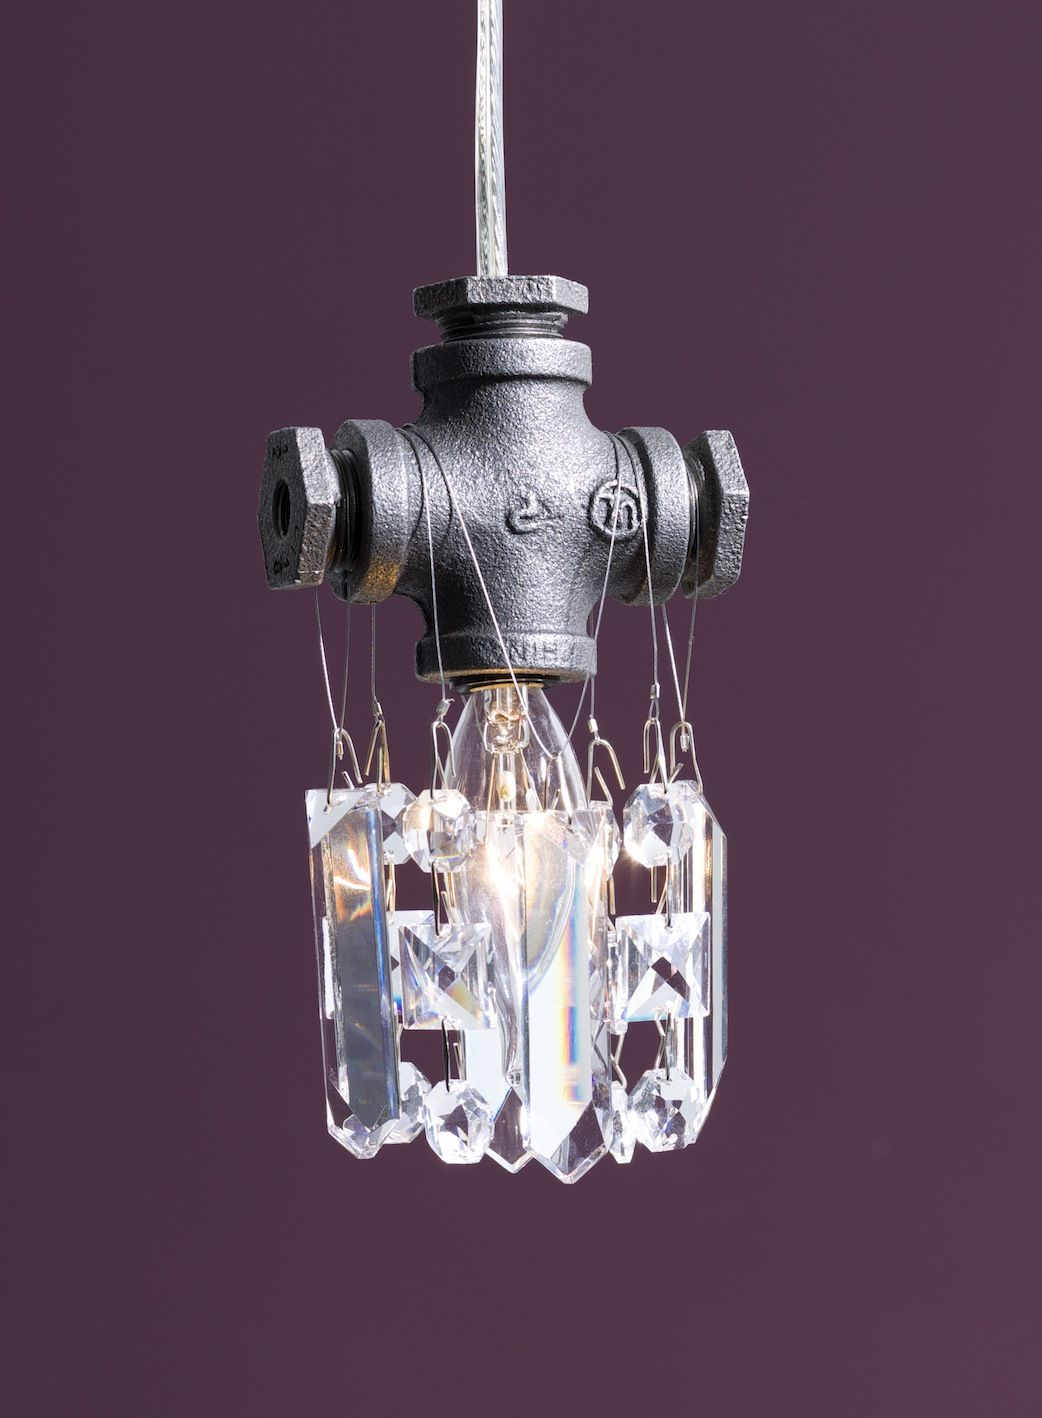 Modern lighting tribeca single bulb pendant from michael mchale